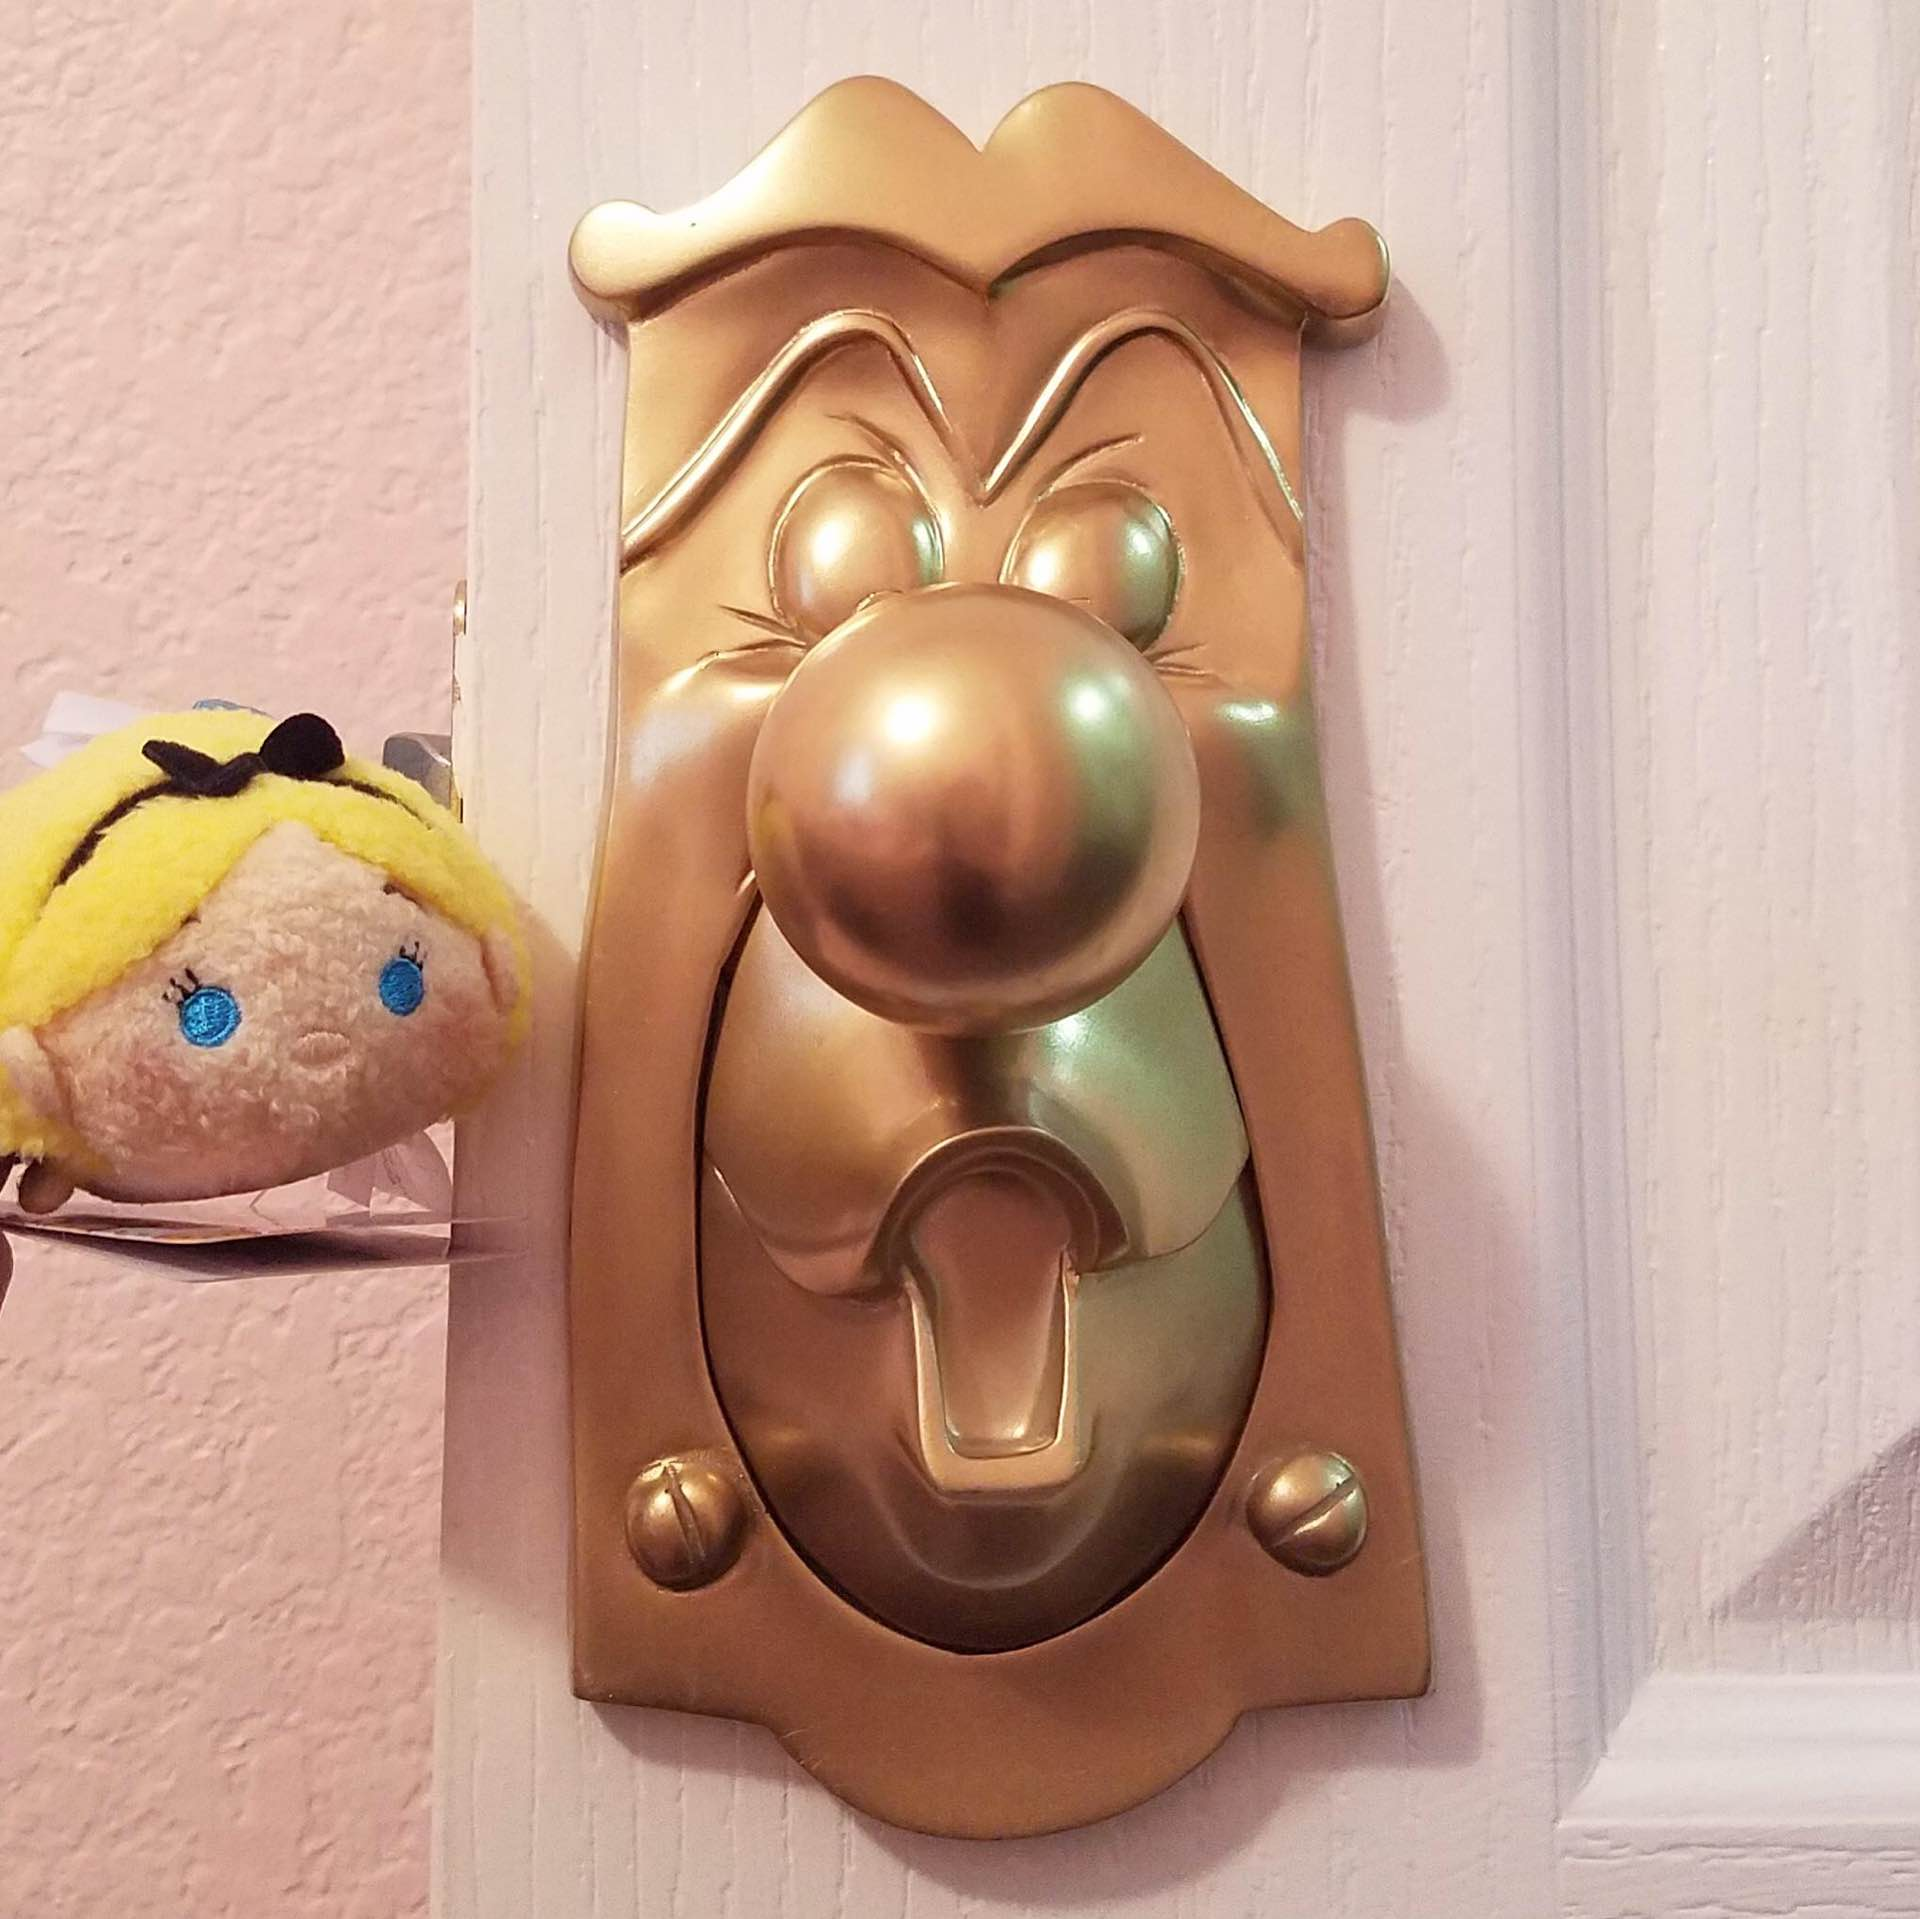 alice-in-wonderland-style-door-knobs-etsy